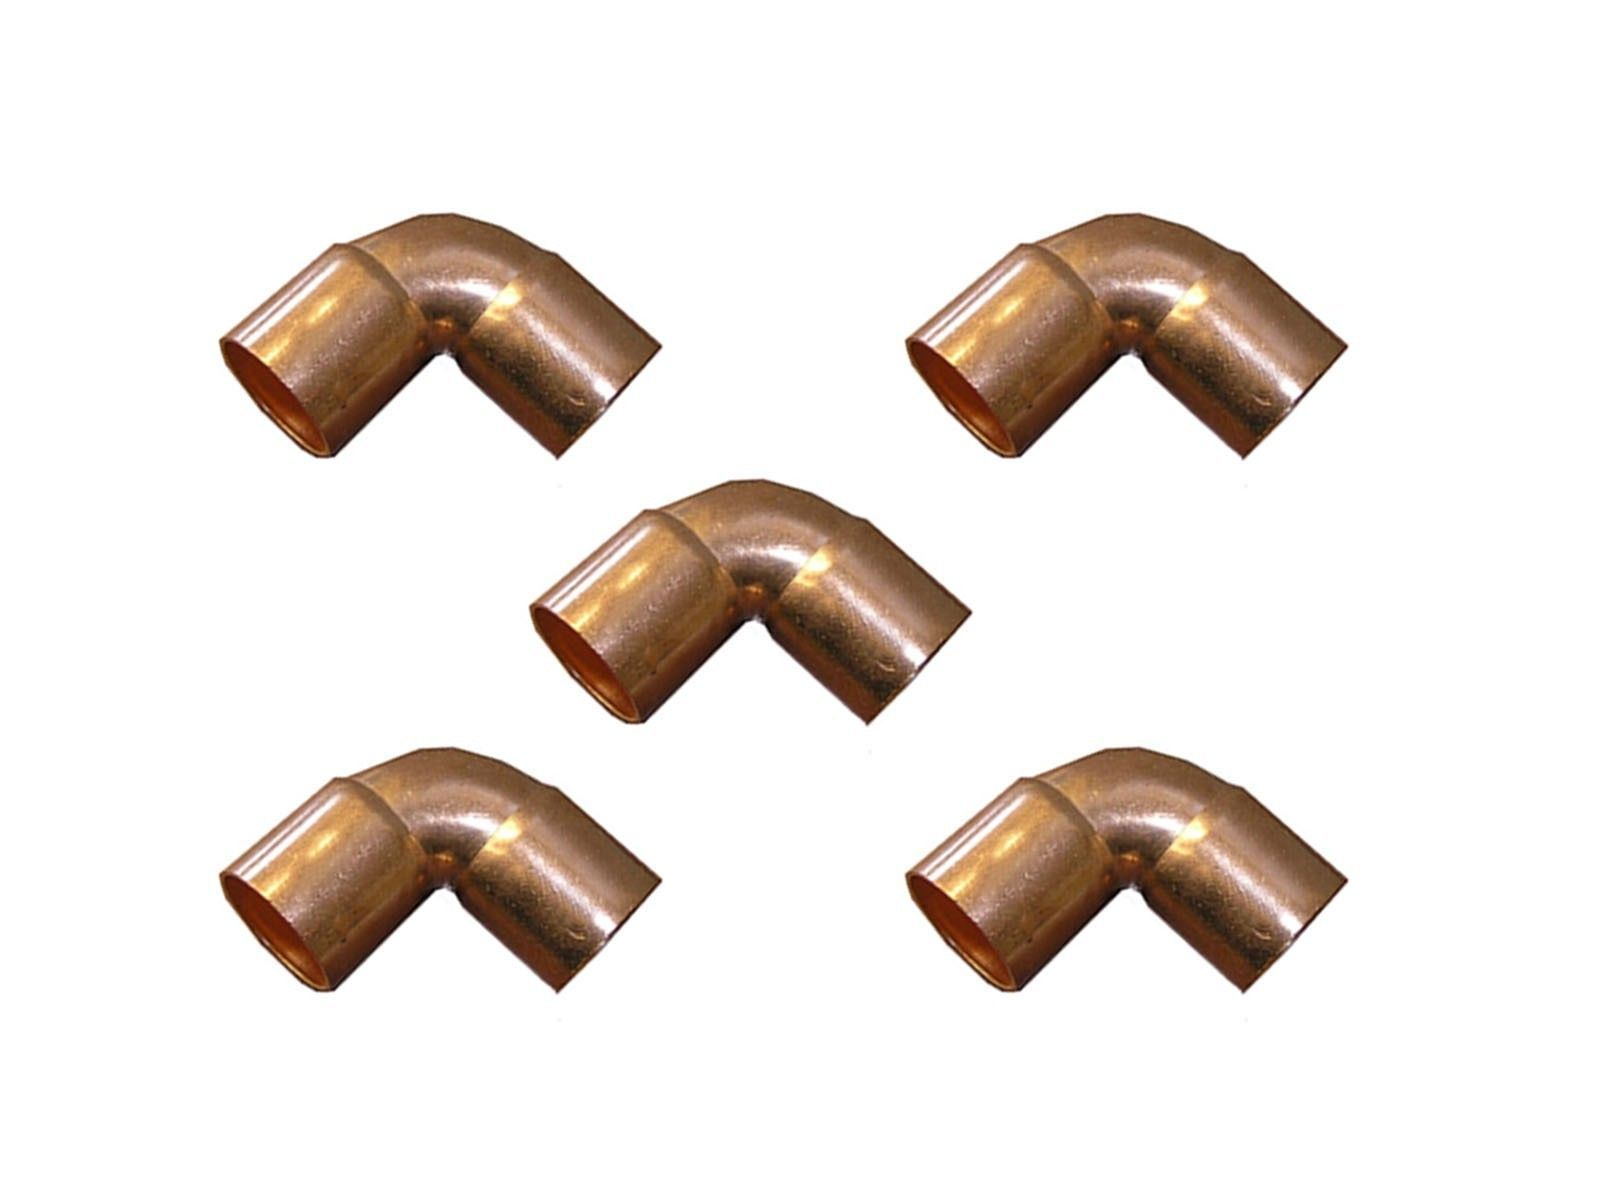 Lot of copper fitting cxc elbow sweat ° degree